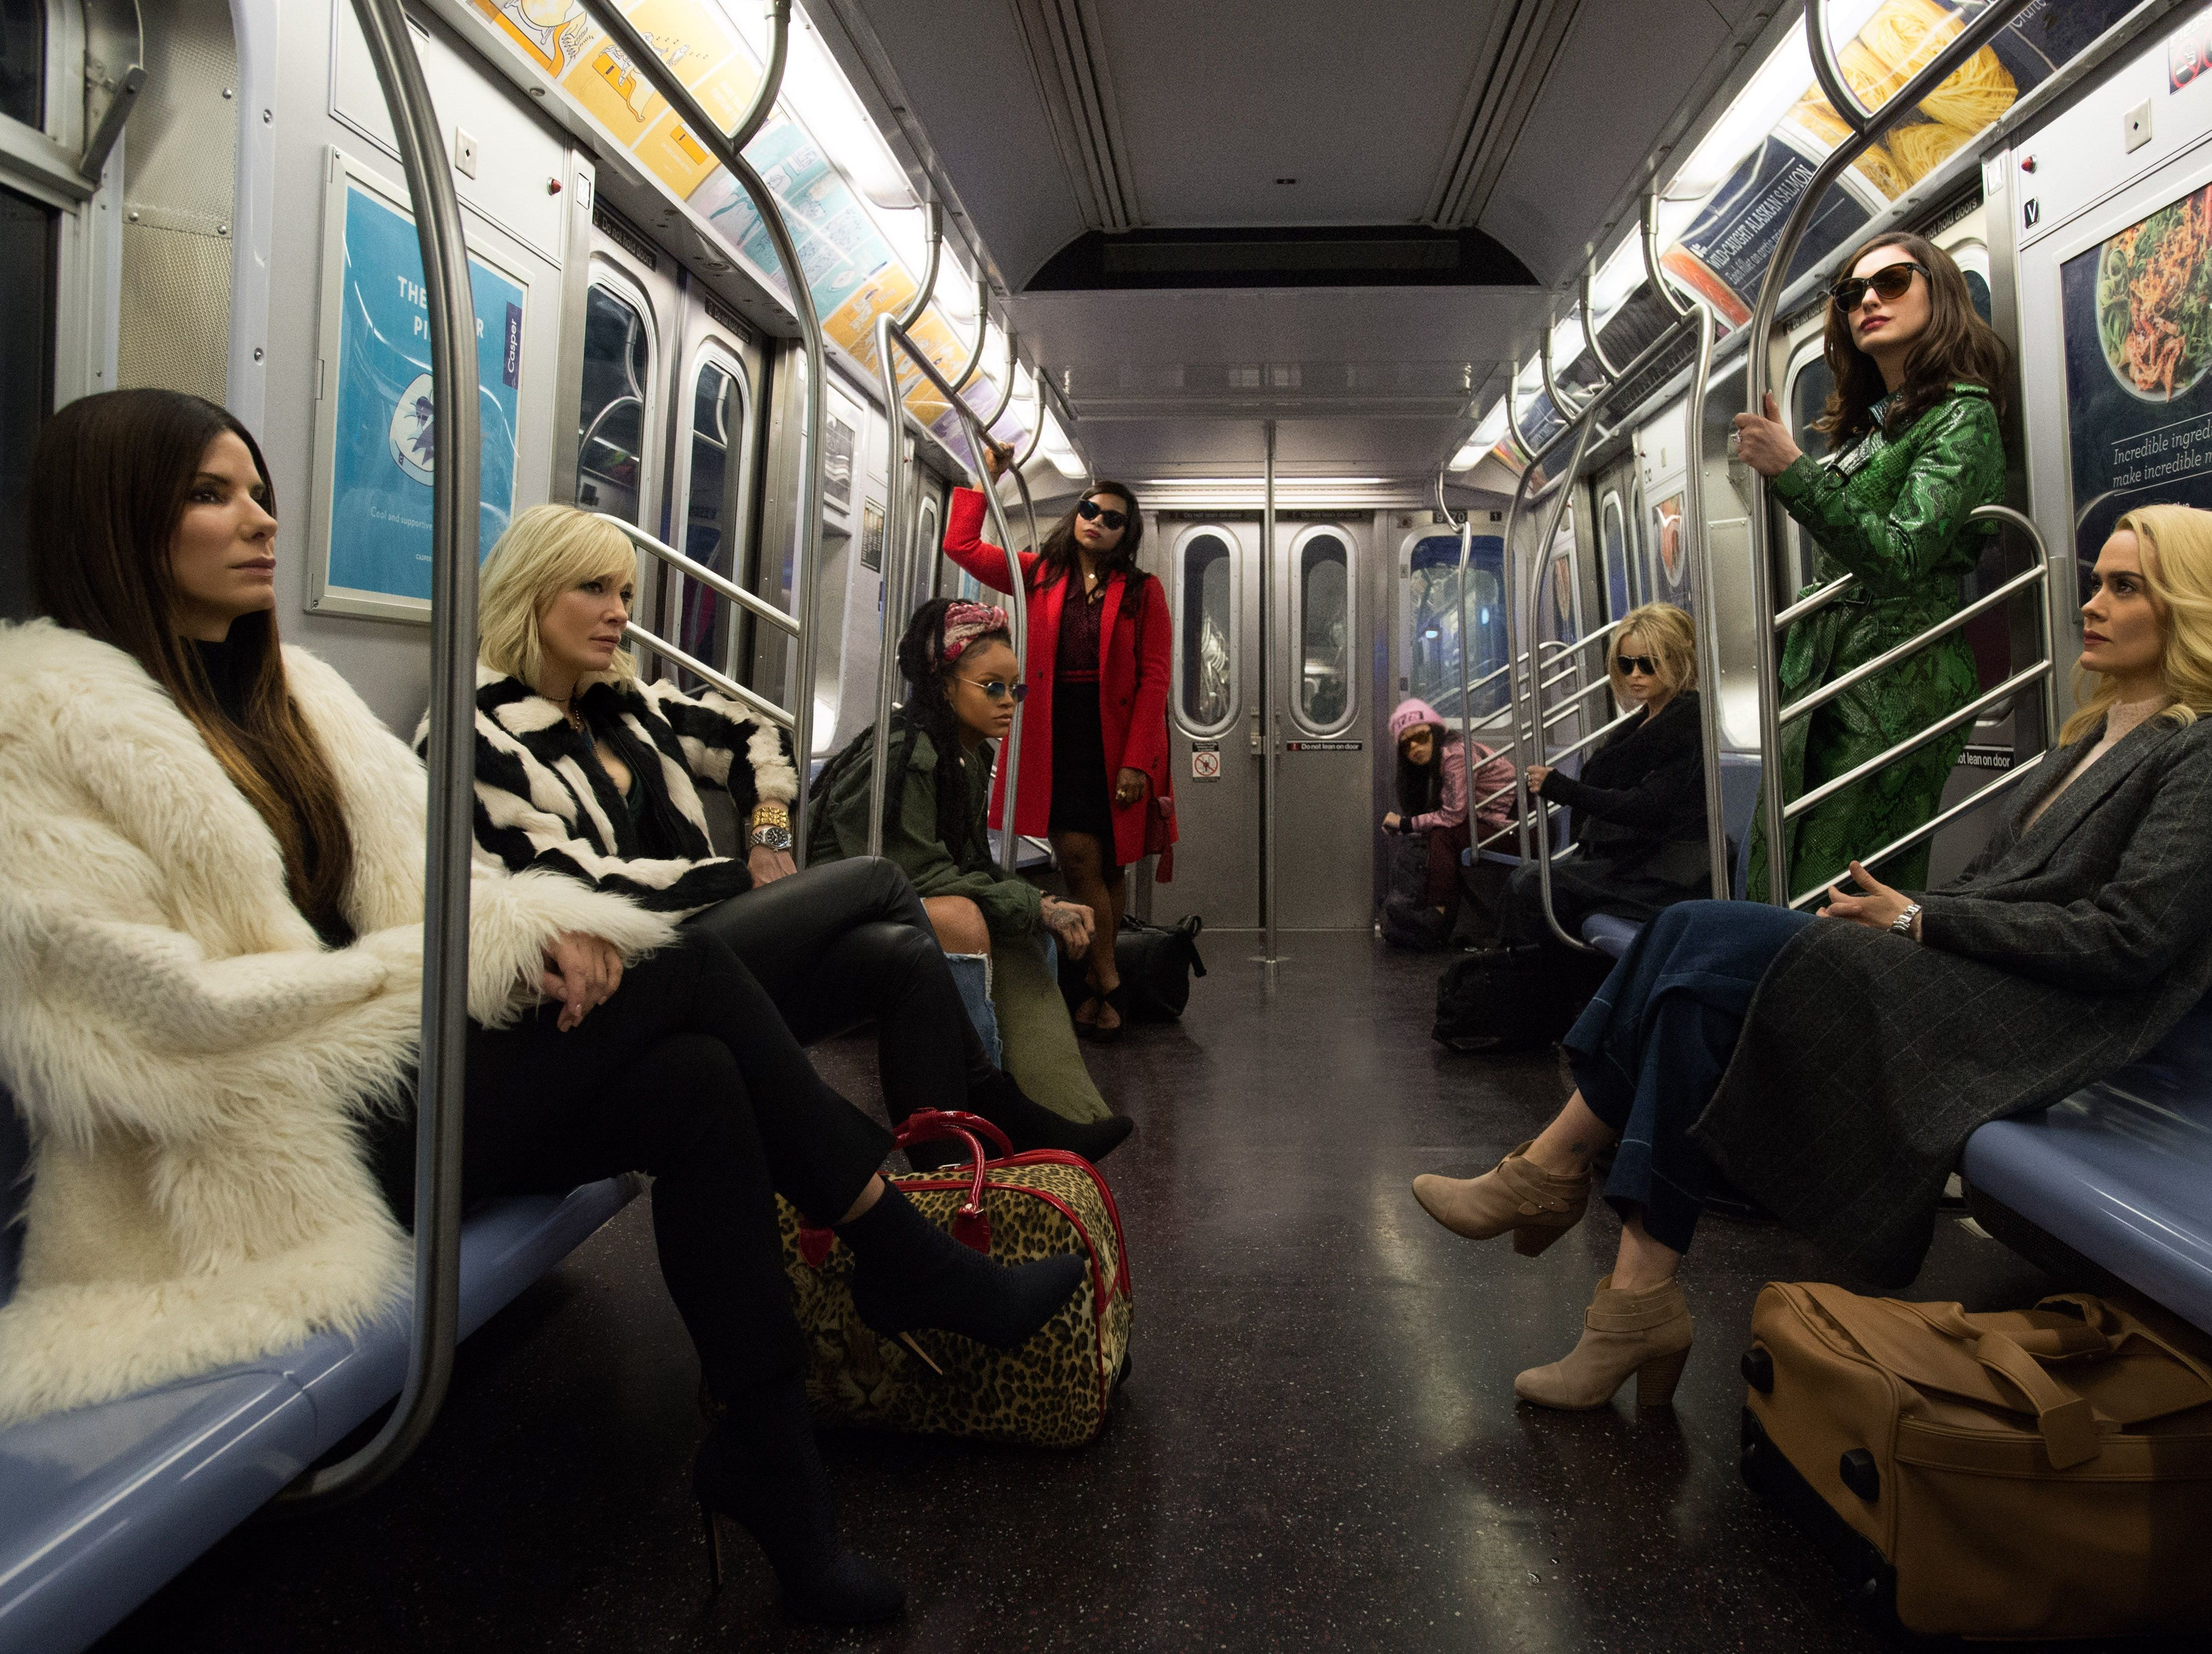 'Ocean's 8': Although the quality doesn't reach that of the 'Ocean's 11' reboot, 'Ocean's 8' has its own delights. Namely, Sandra Bullock (from left), Cate Blanchett, Rihanna, Mindy Kaling, Awkwafina, Helena Bonham Carter, Anne Hathaway and Sarah Paulson. Bonus: A good chunk of the movie is set at fashion's biggest night, the Met Gala.